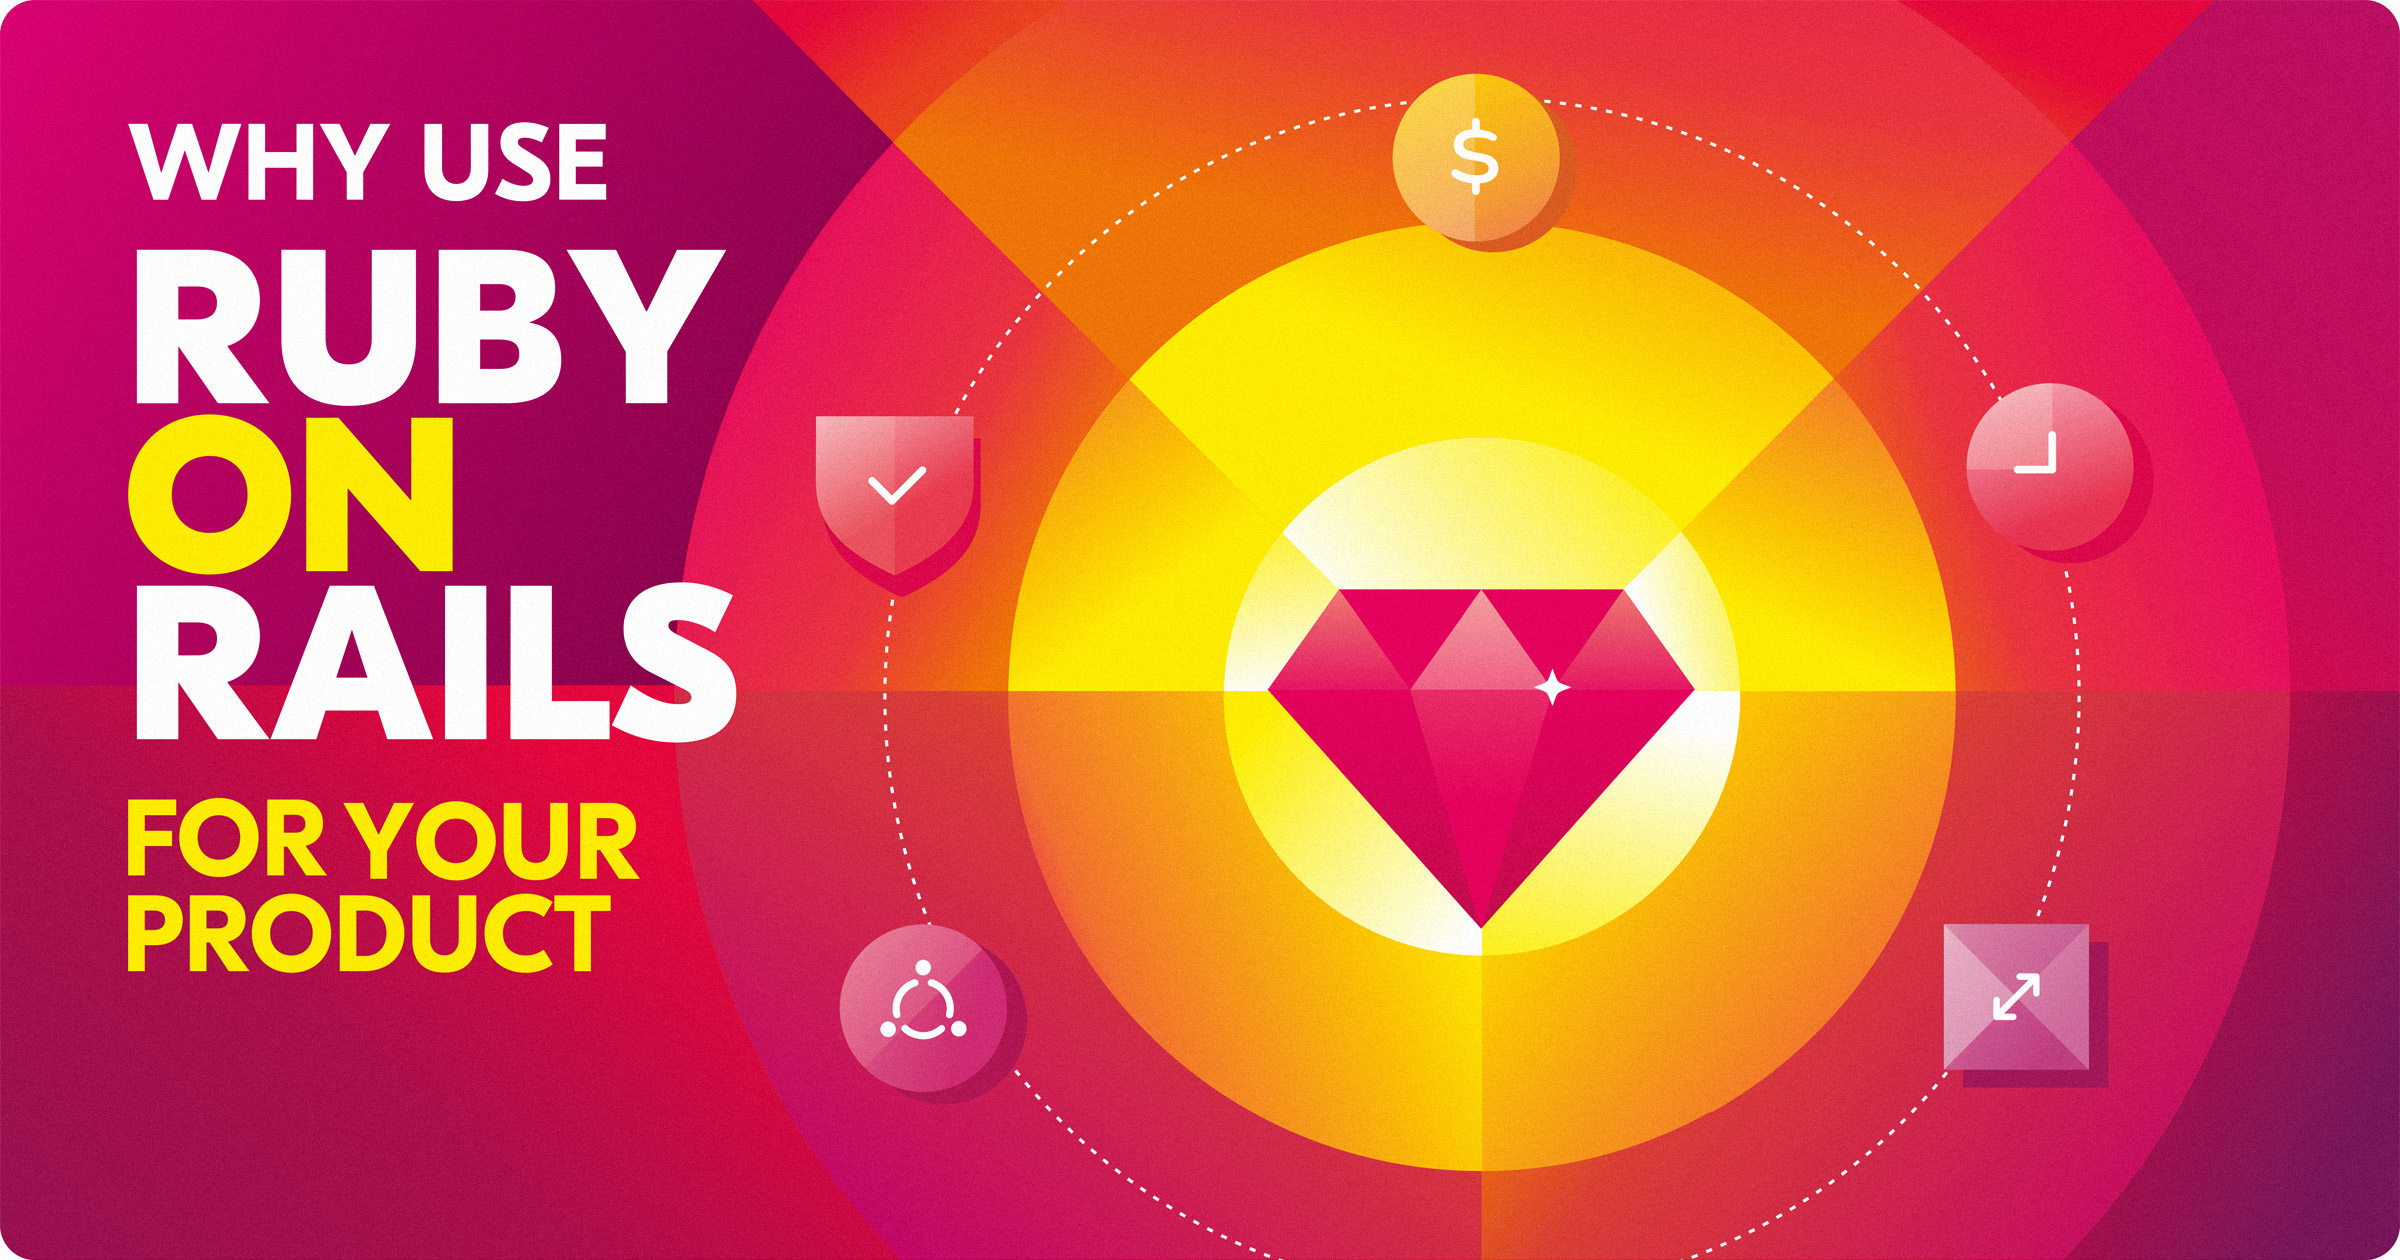 Why use Ruby on Rails for your product